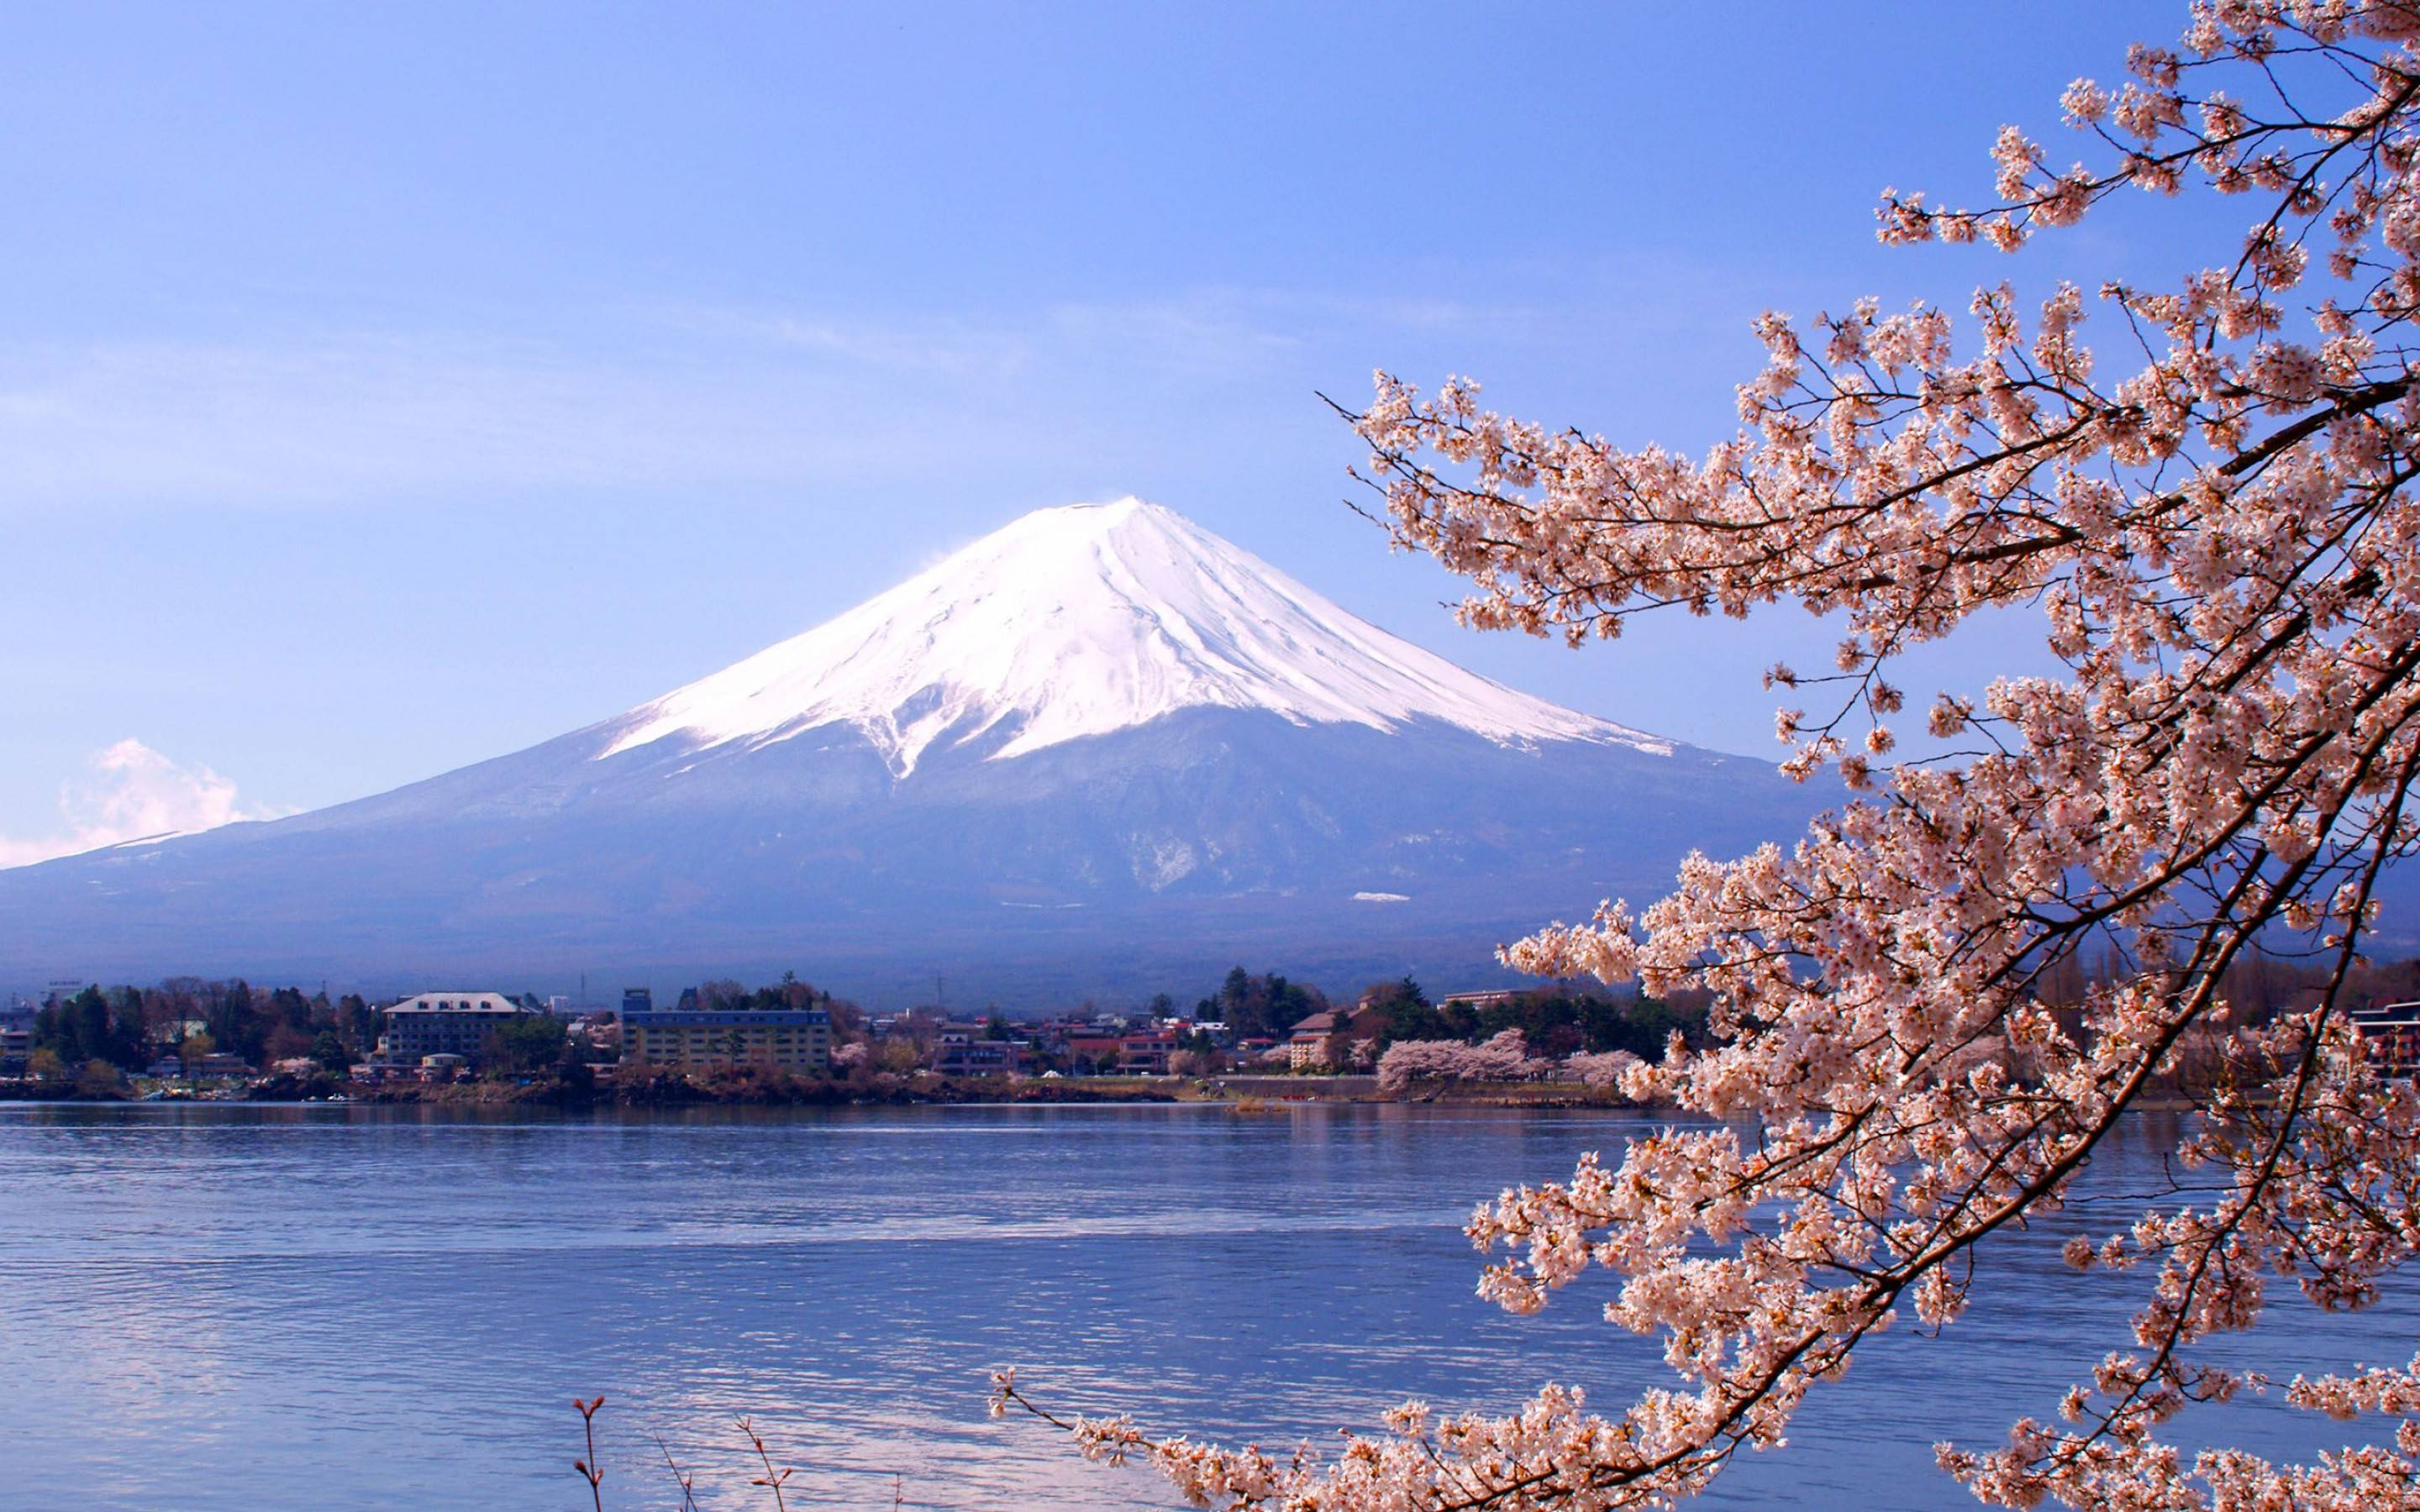 Mount Fuji Desktop Wallpapers   Top Mount Fuji Desktop 2880x1800